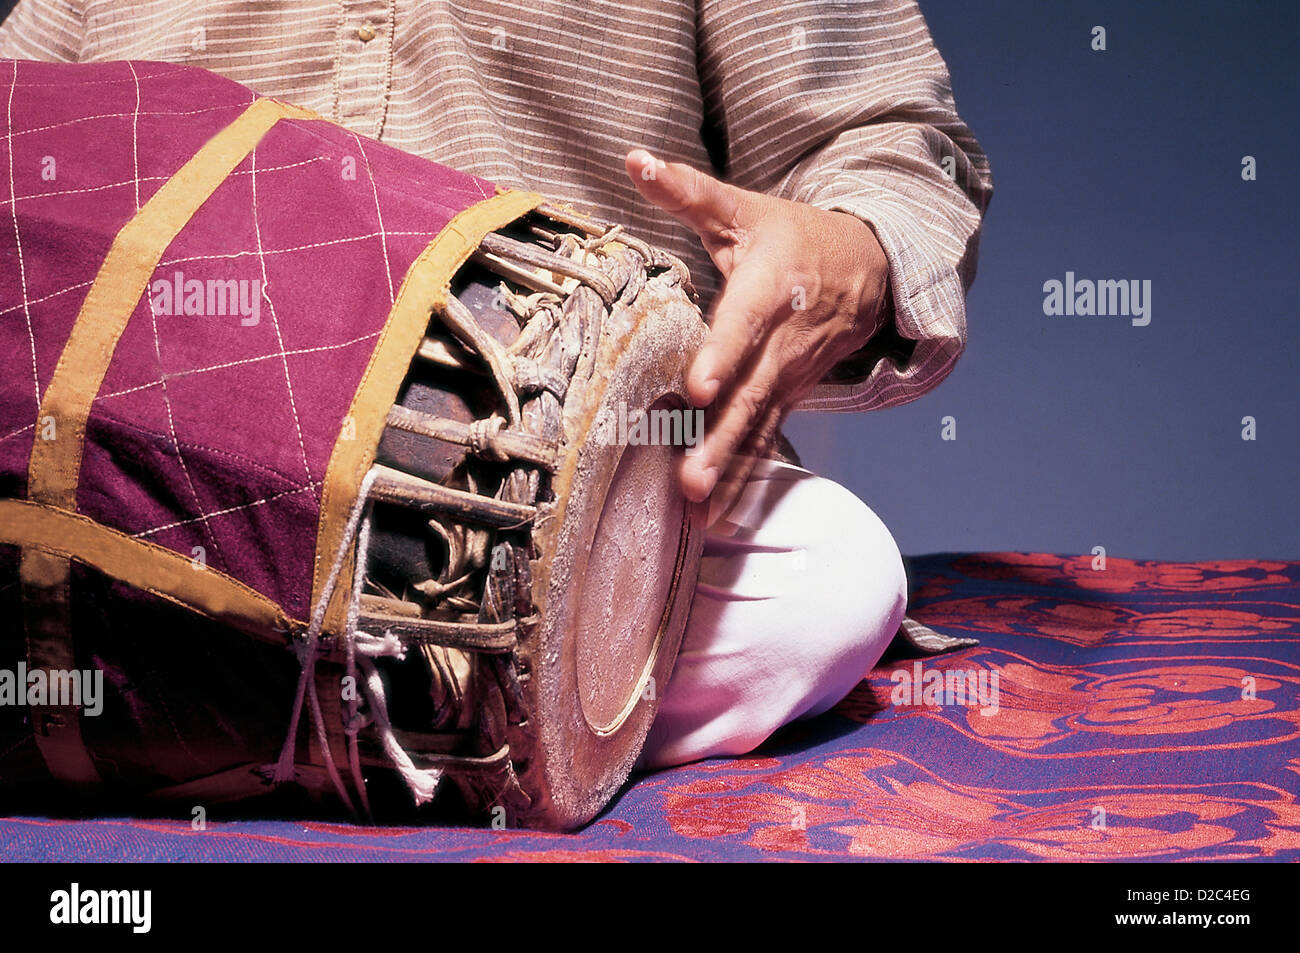 Indian Classical Musician Playing With Left Hand Percussion Musical Instrument Mridangam In Concert, India - Stock Image